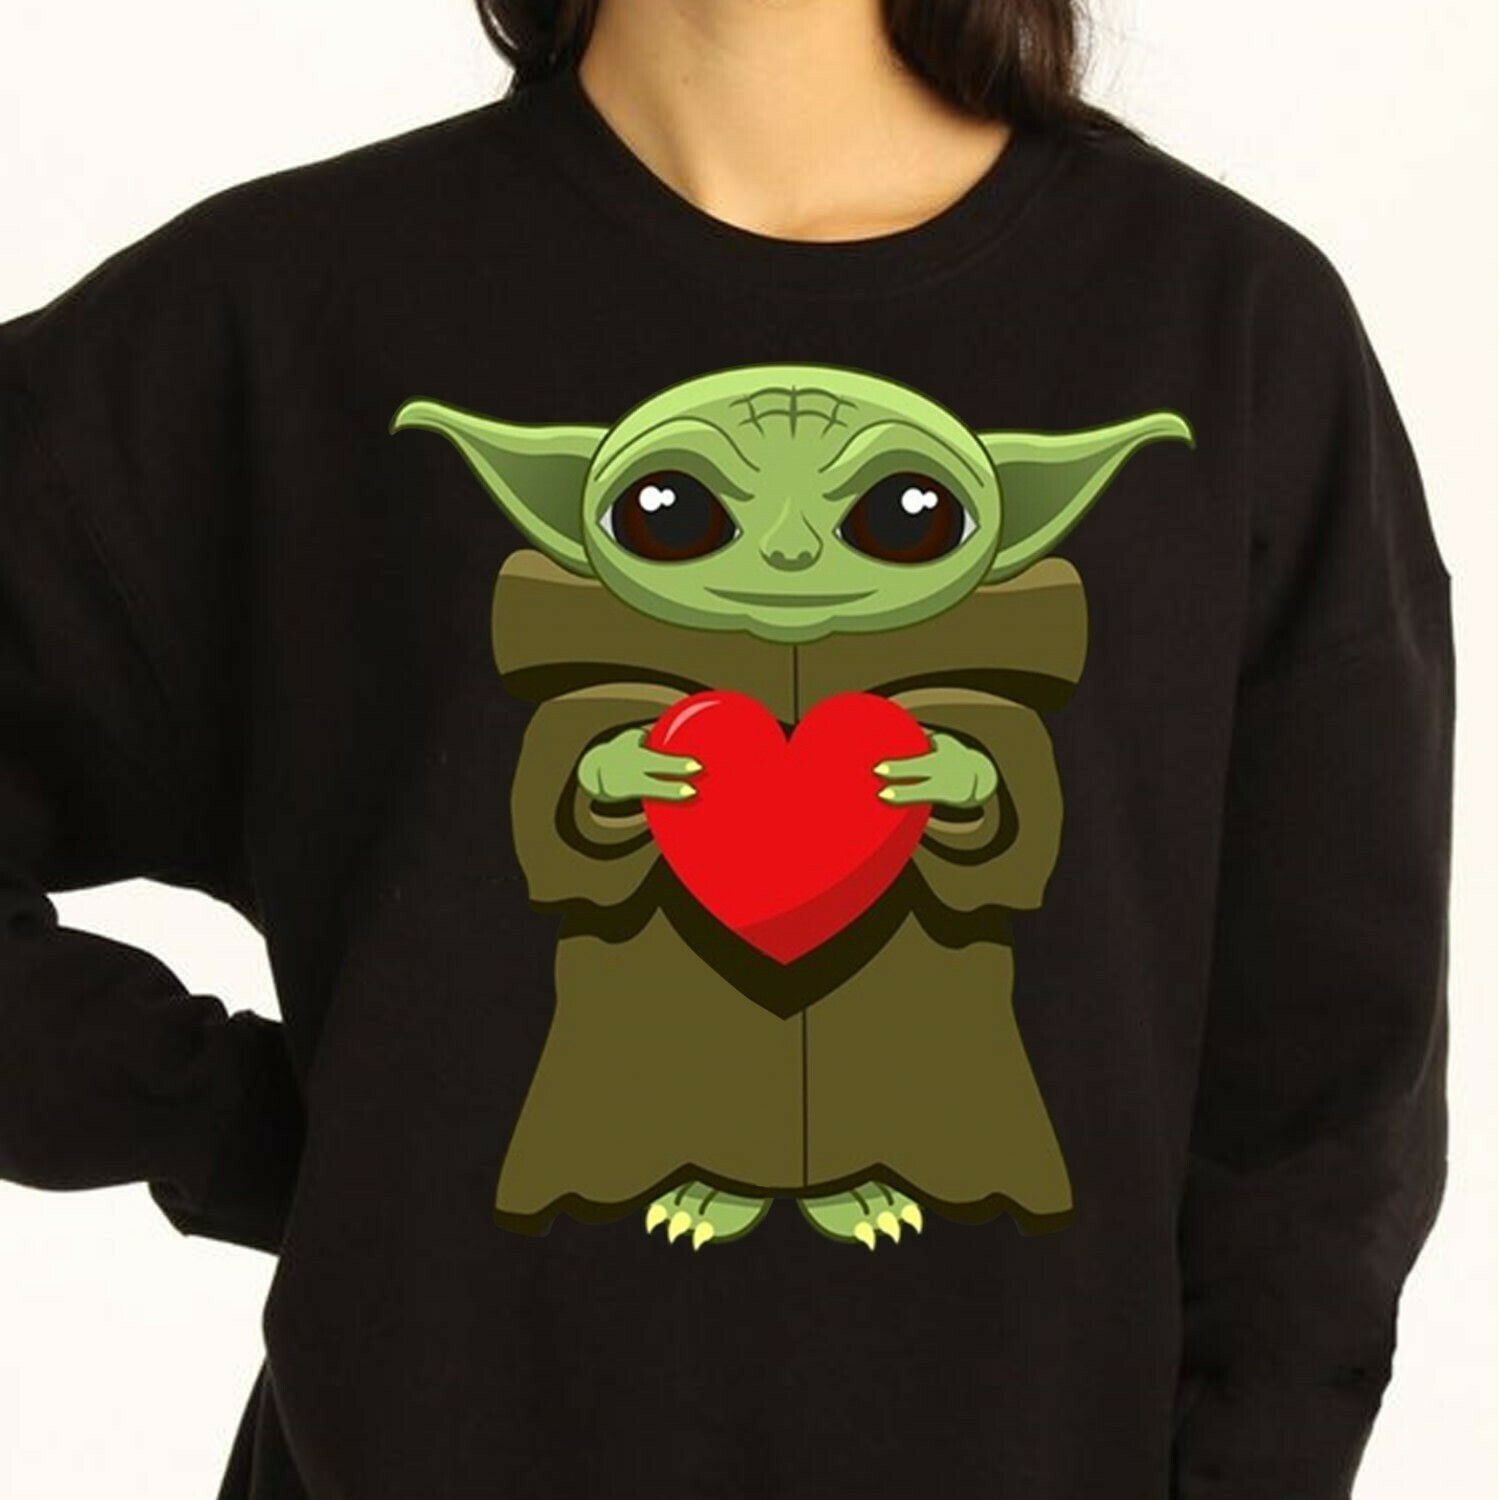 Star Wars baby Yoda give a fuck pocket,Baby Yoda hug red Heart,Funny The Rise of Skywalker Movie Memes Fan  T-Shirt Sweatshirt Hoodie Long Sleeve Tee Kids Youth Gifts Jolly Family Gifts